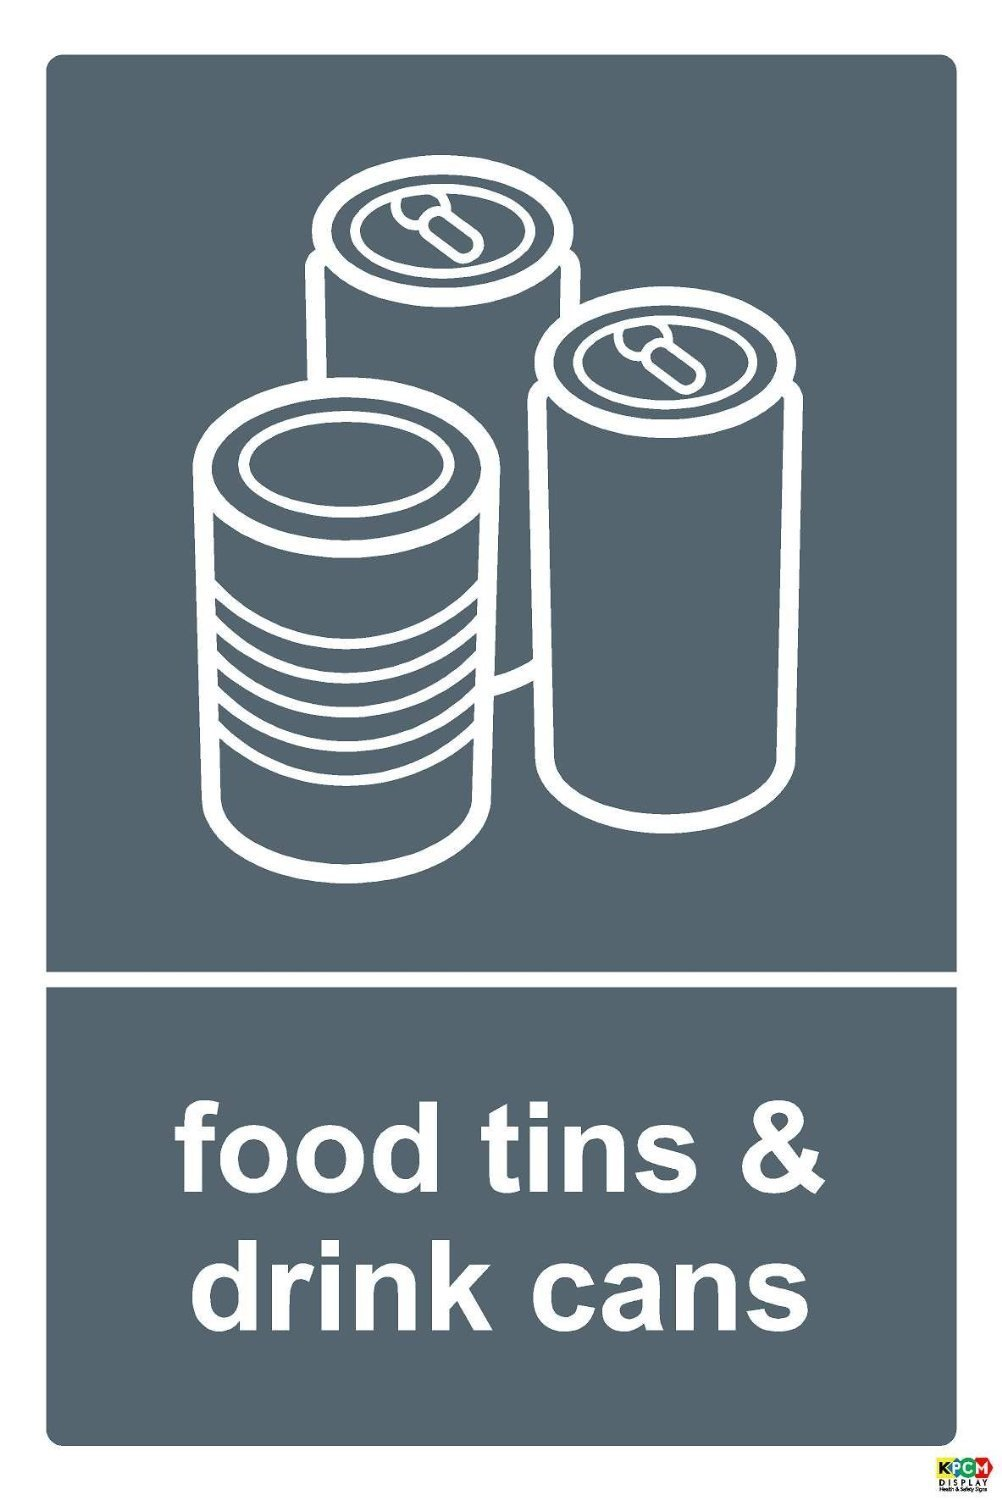 Recycling bin sticker Food Tins & Drink Cans - Self Adhesive Label